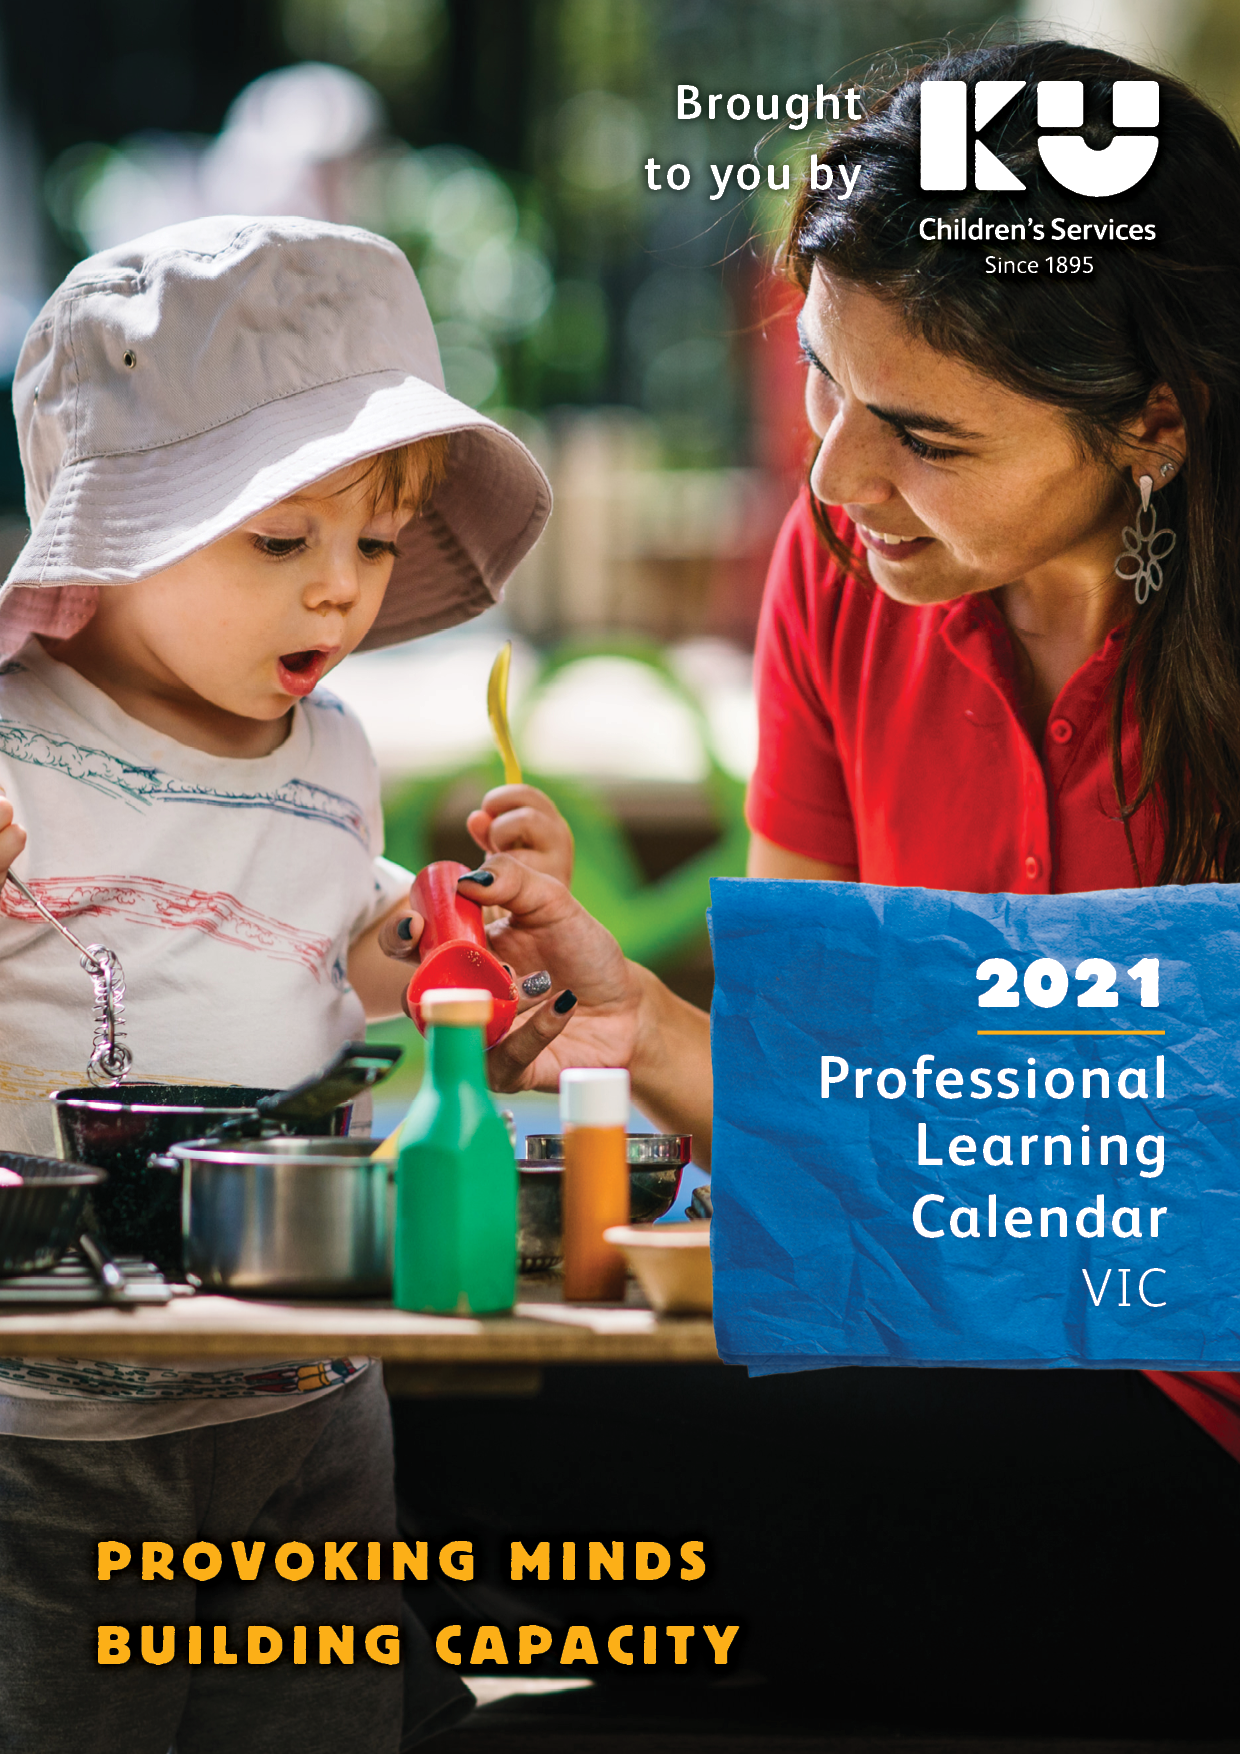 KU Professional Learning Calendar VIC 2021